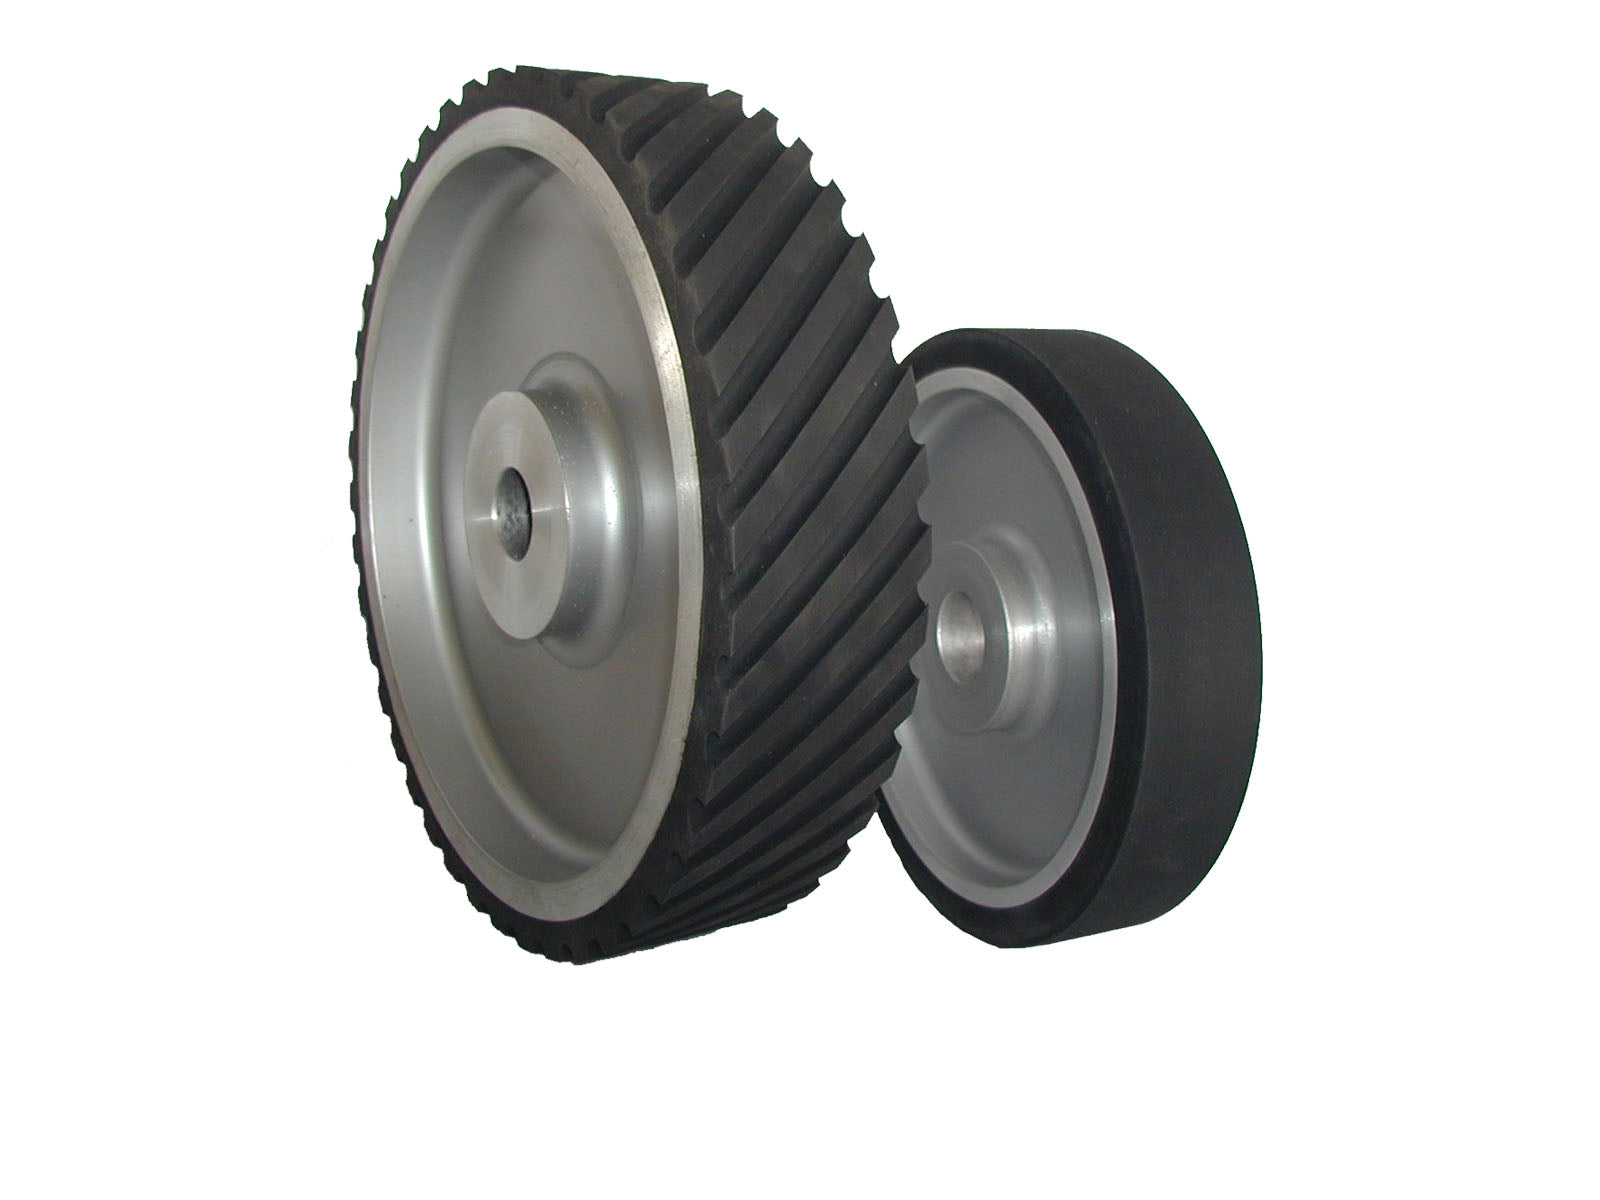 BADER WHEEL 10 X 2 PLAIN FACE WHEEL